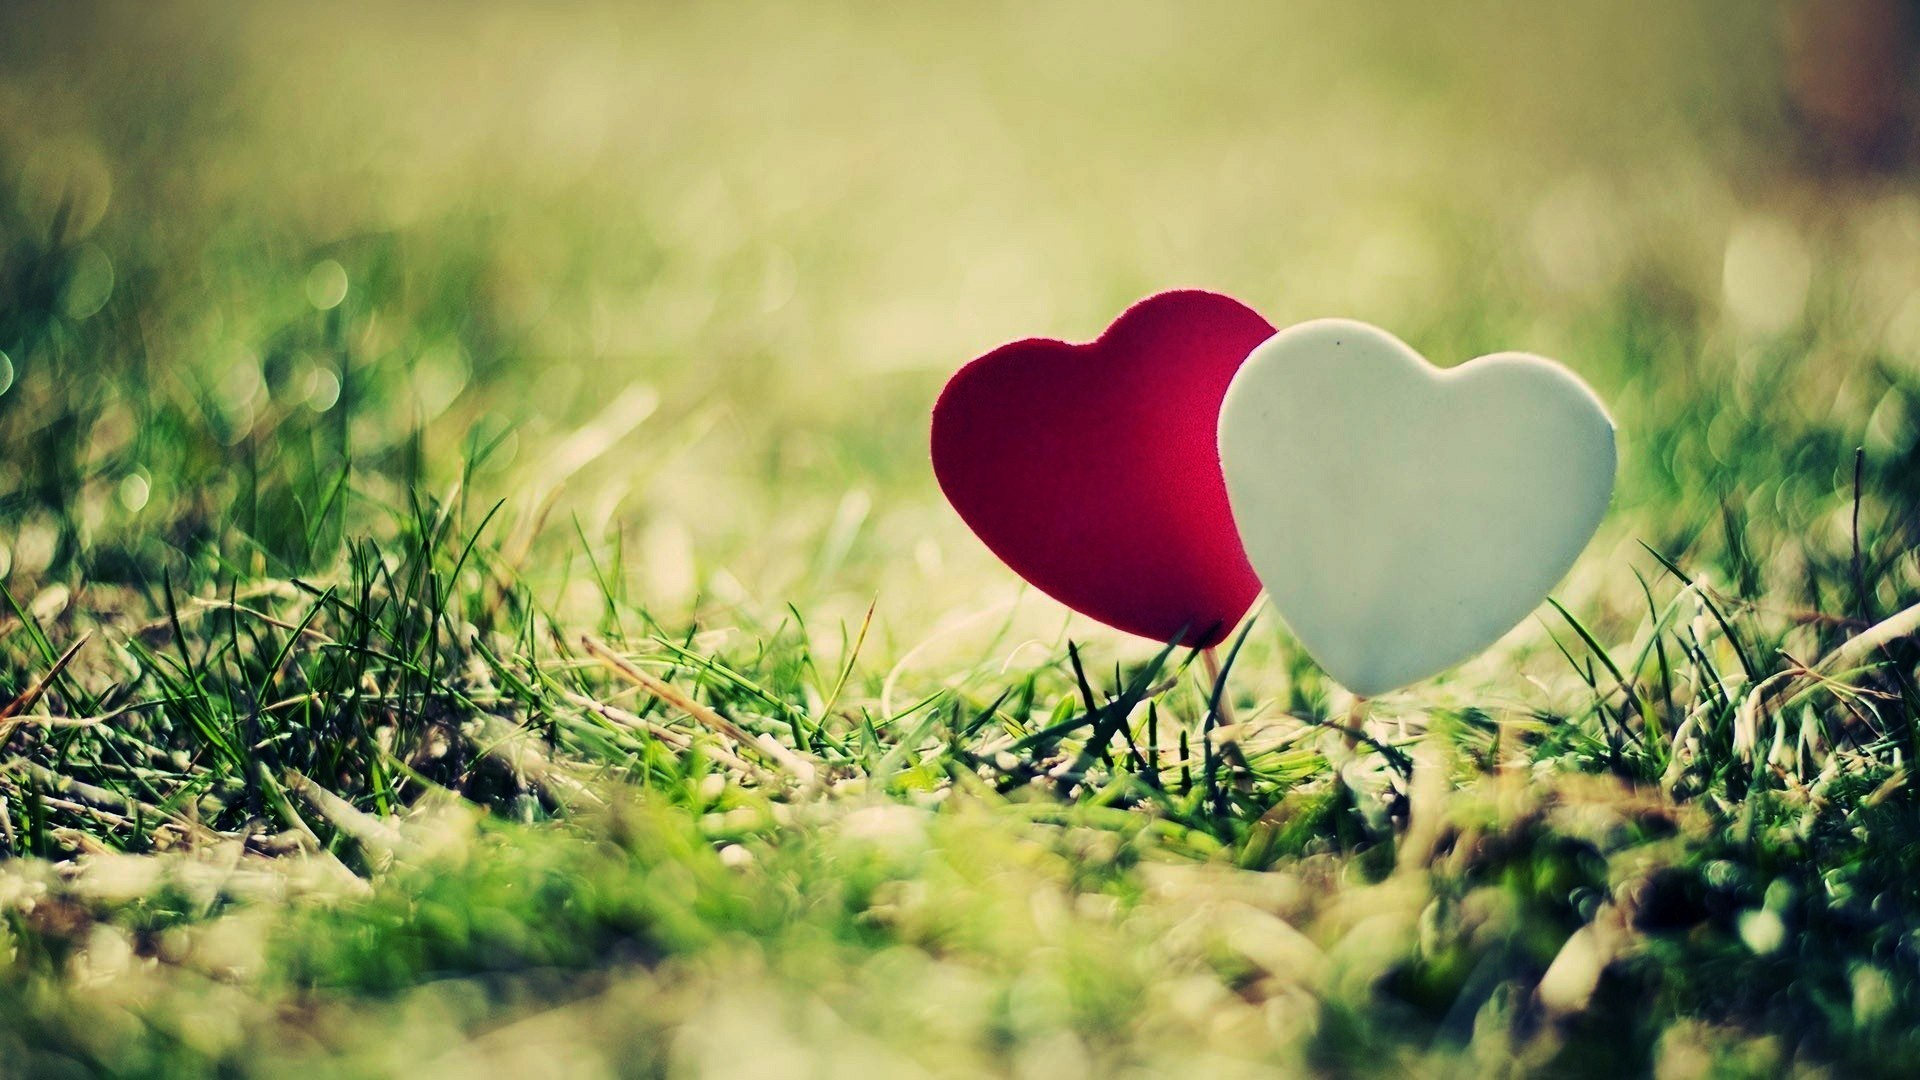 New love images wallpapers 2018 74 images for Latest love images